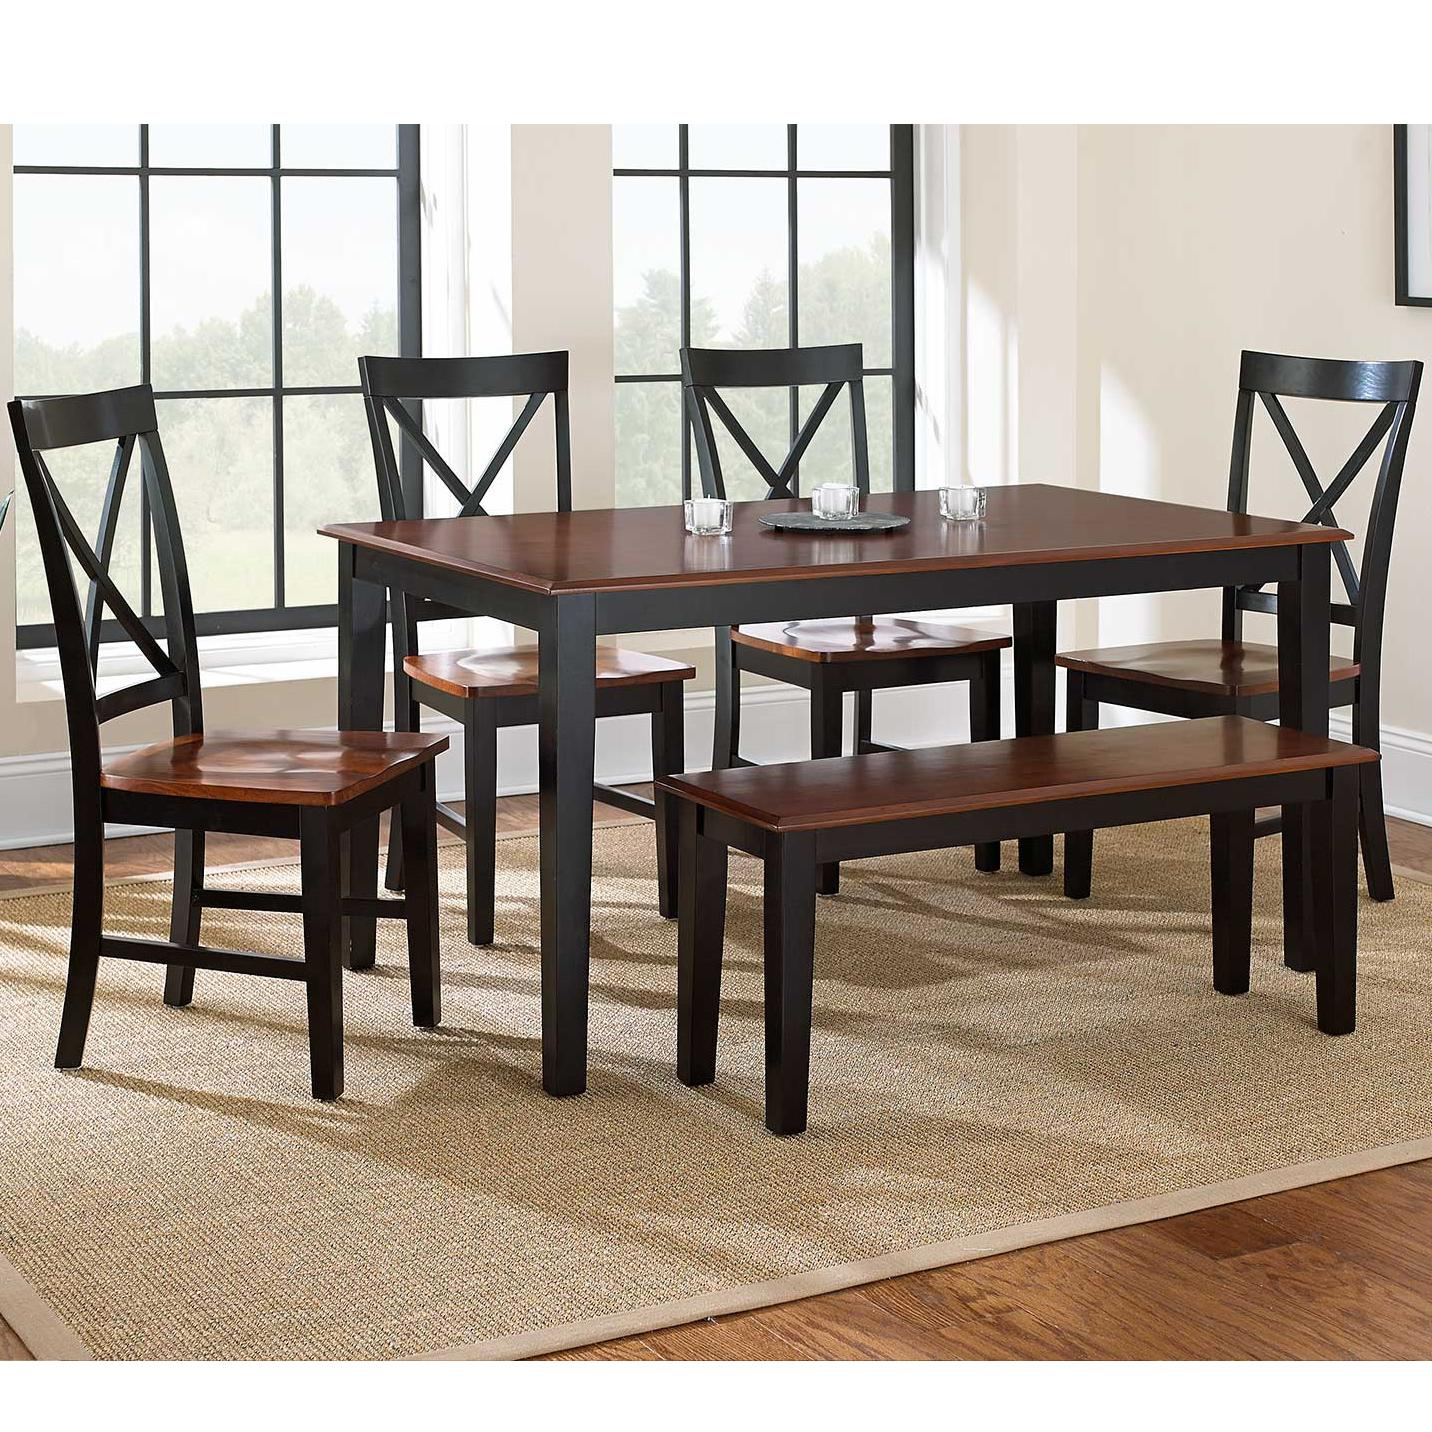 Steve silver kingston 6 piece casual dining table bench for Casual dining room chairs